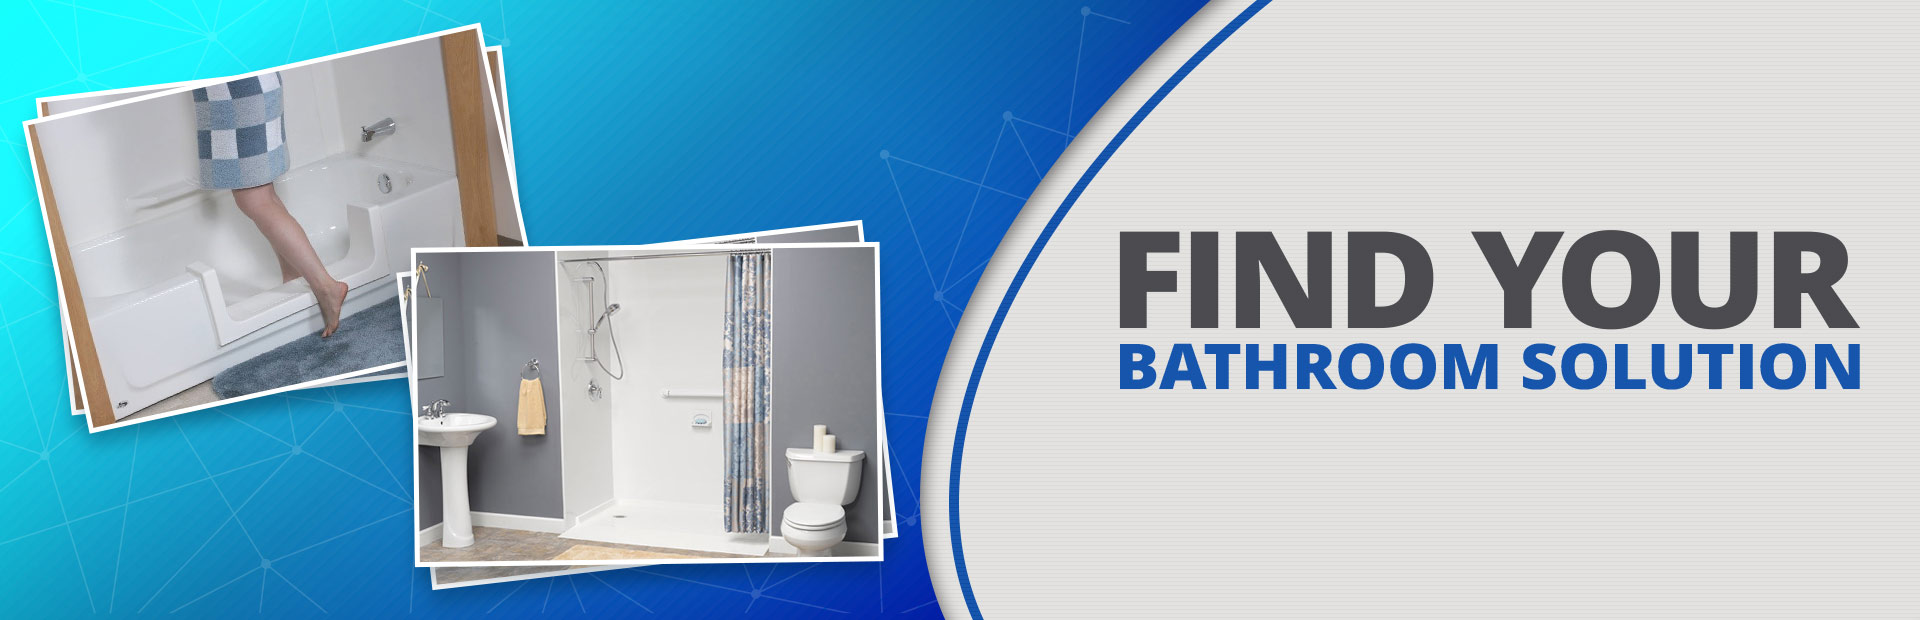 Find your bathroom solution, because when life changes so can the bathroom.